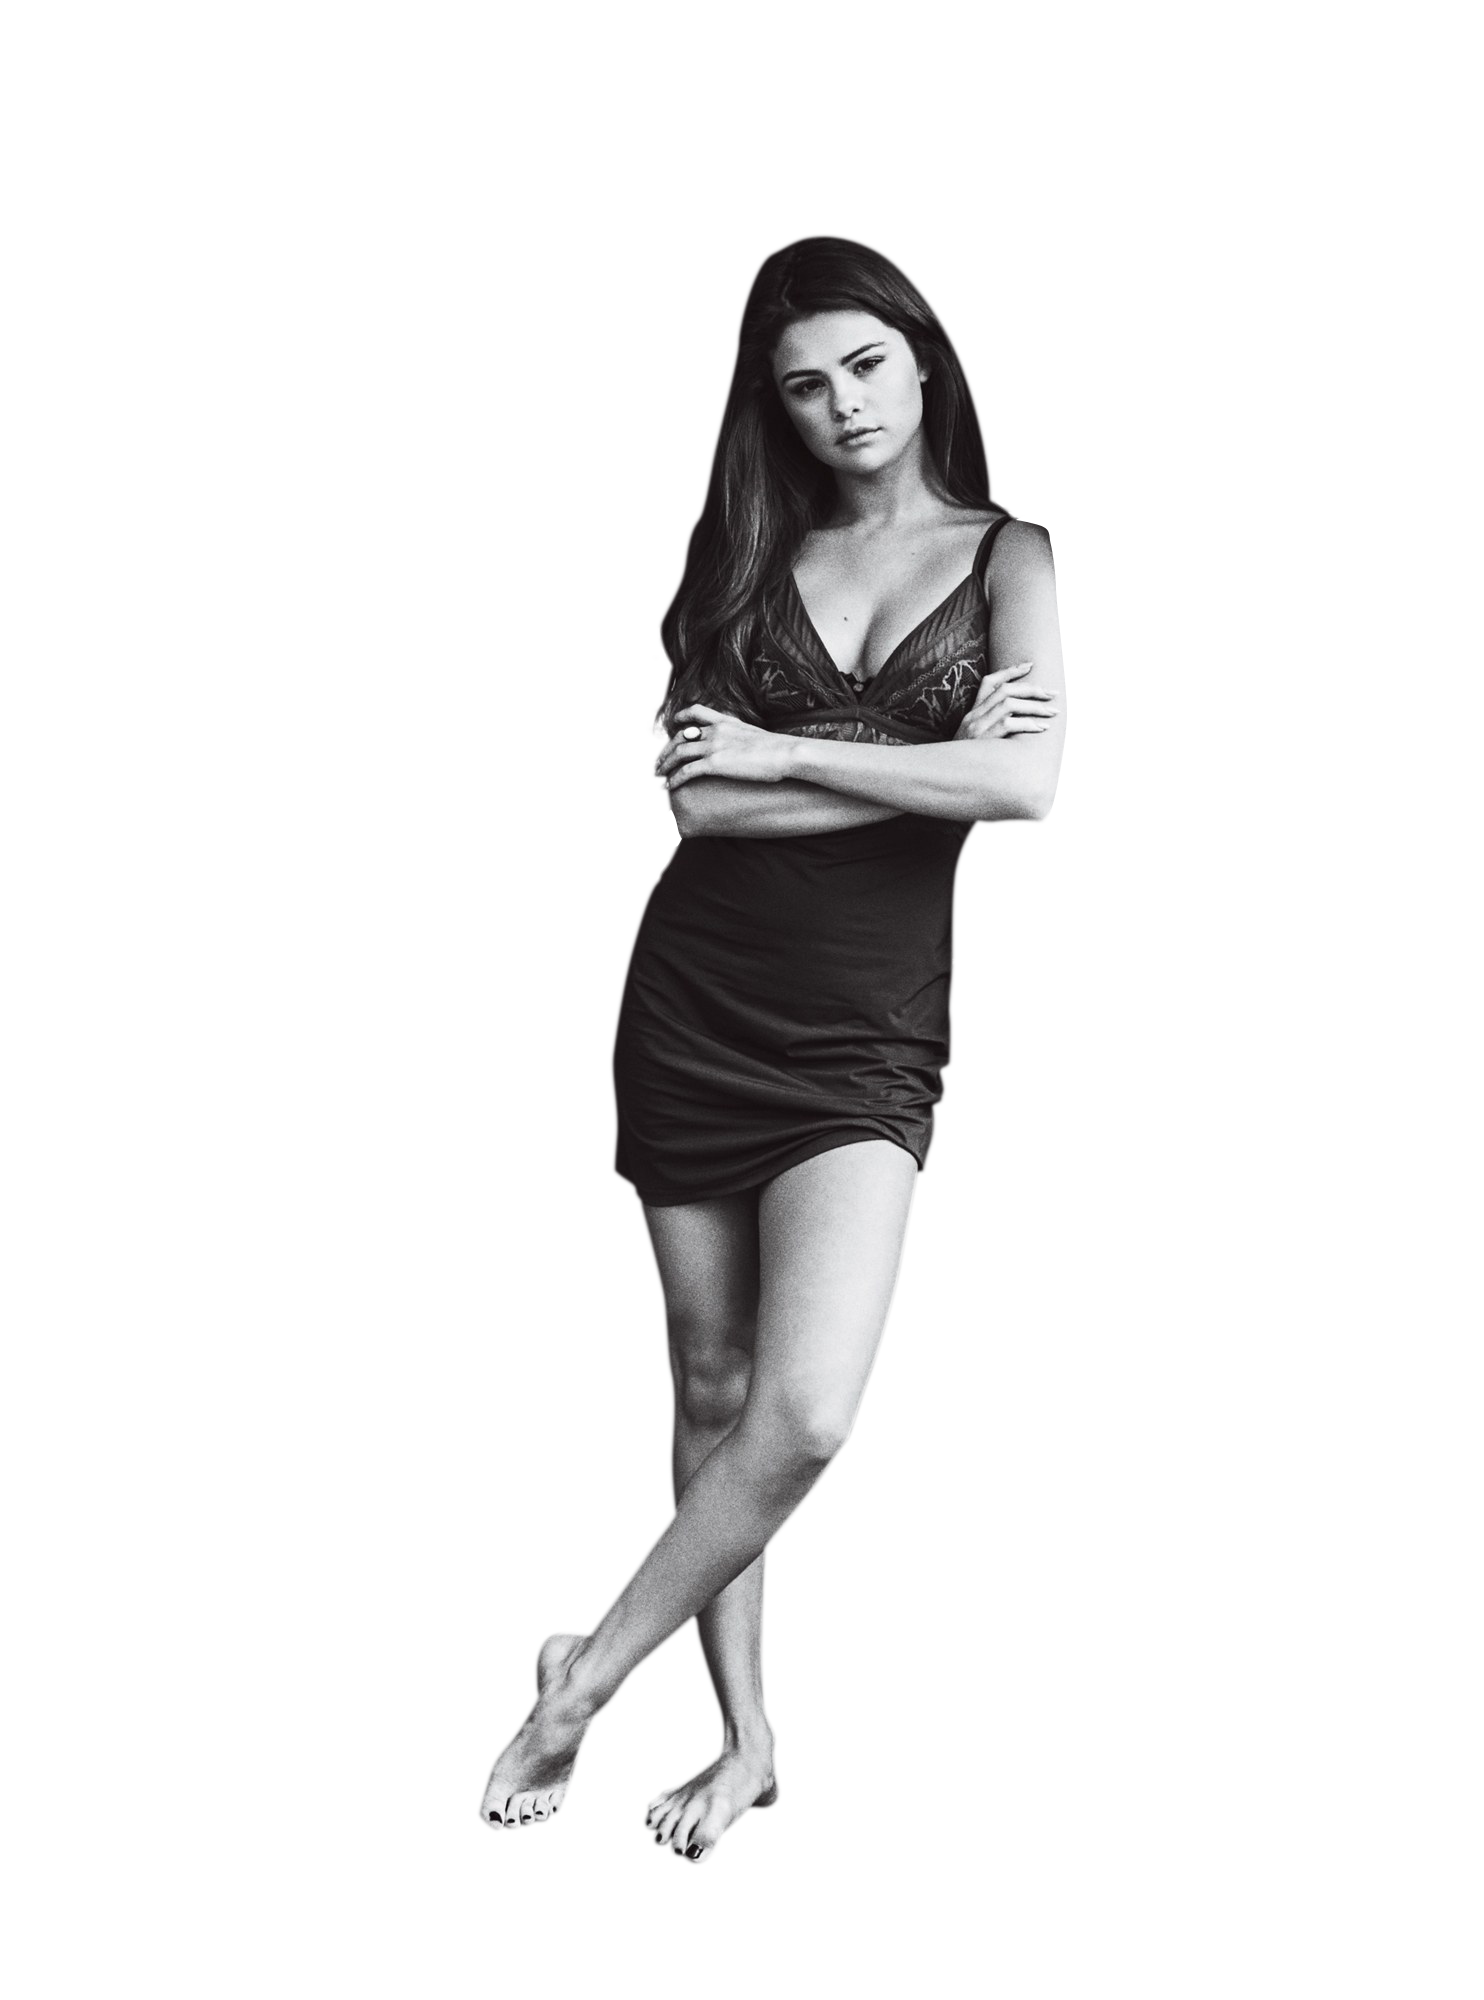 Selena Gomez Black and White PNG Image Selena gomez